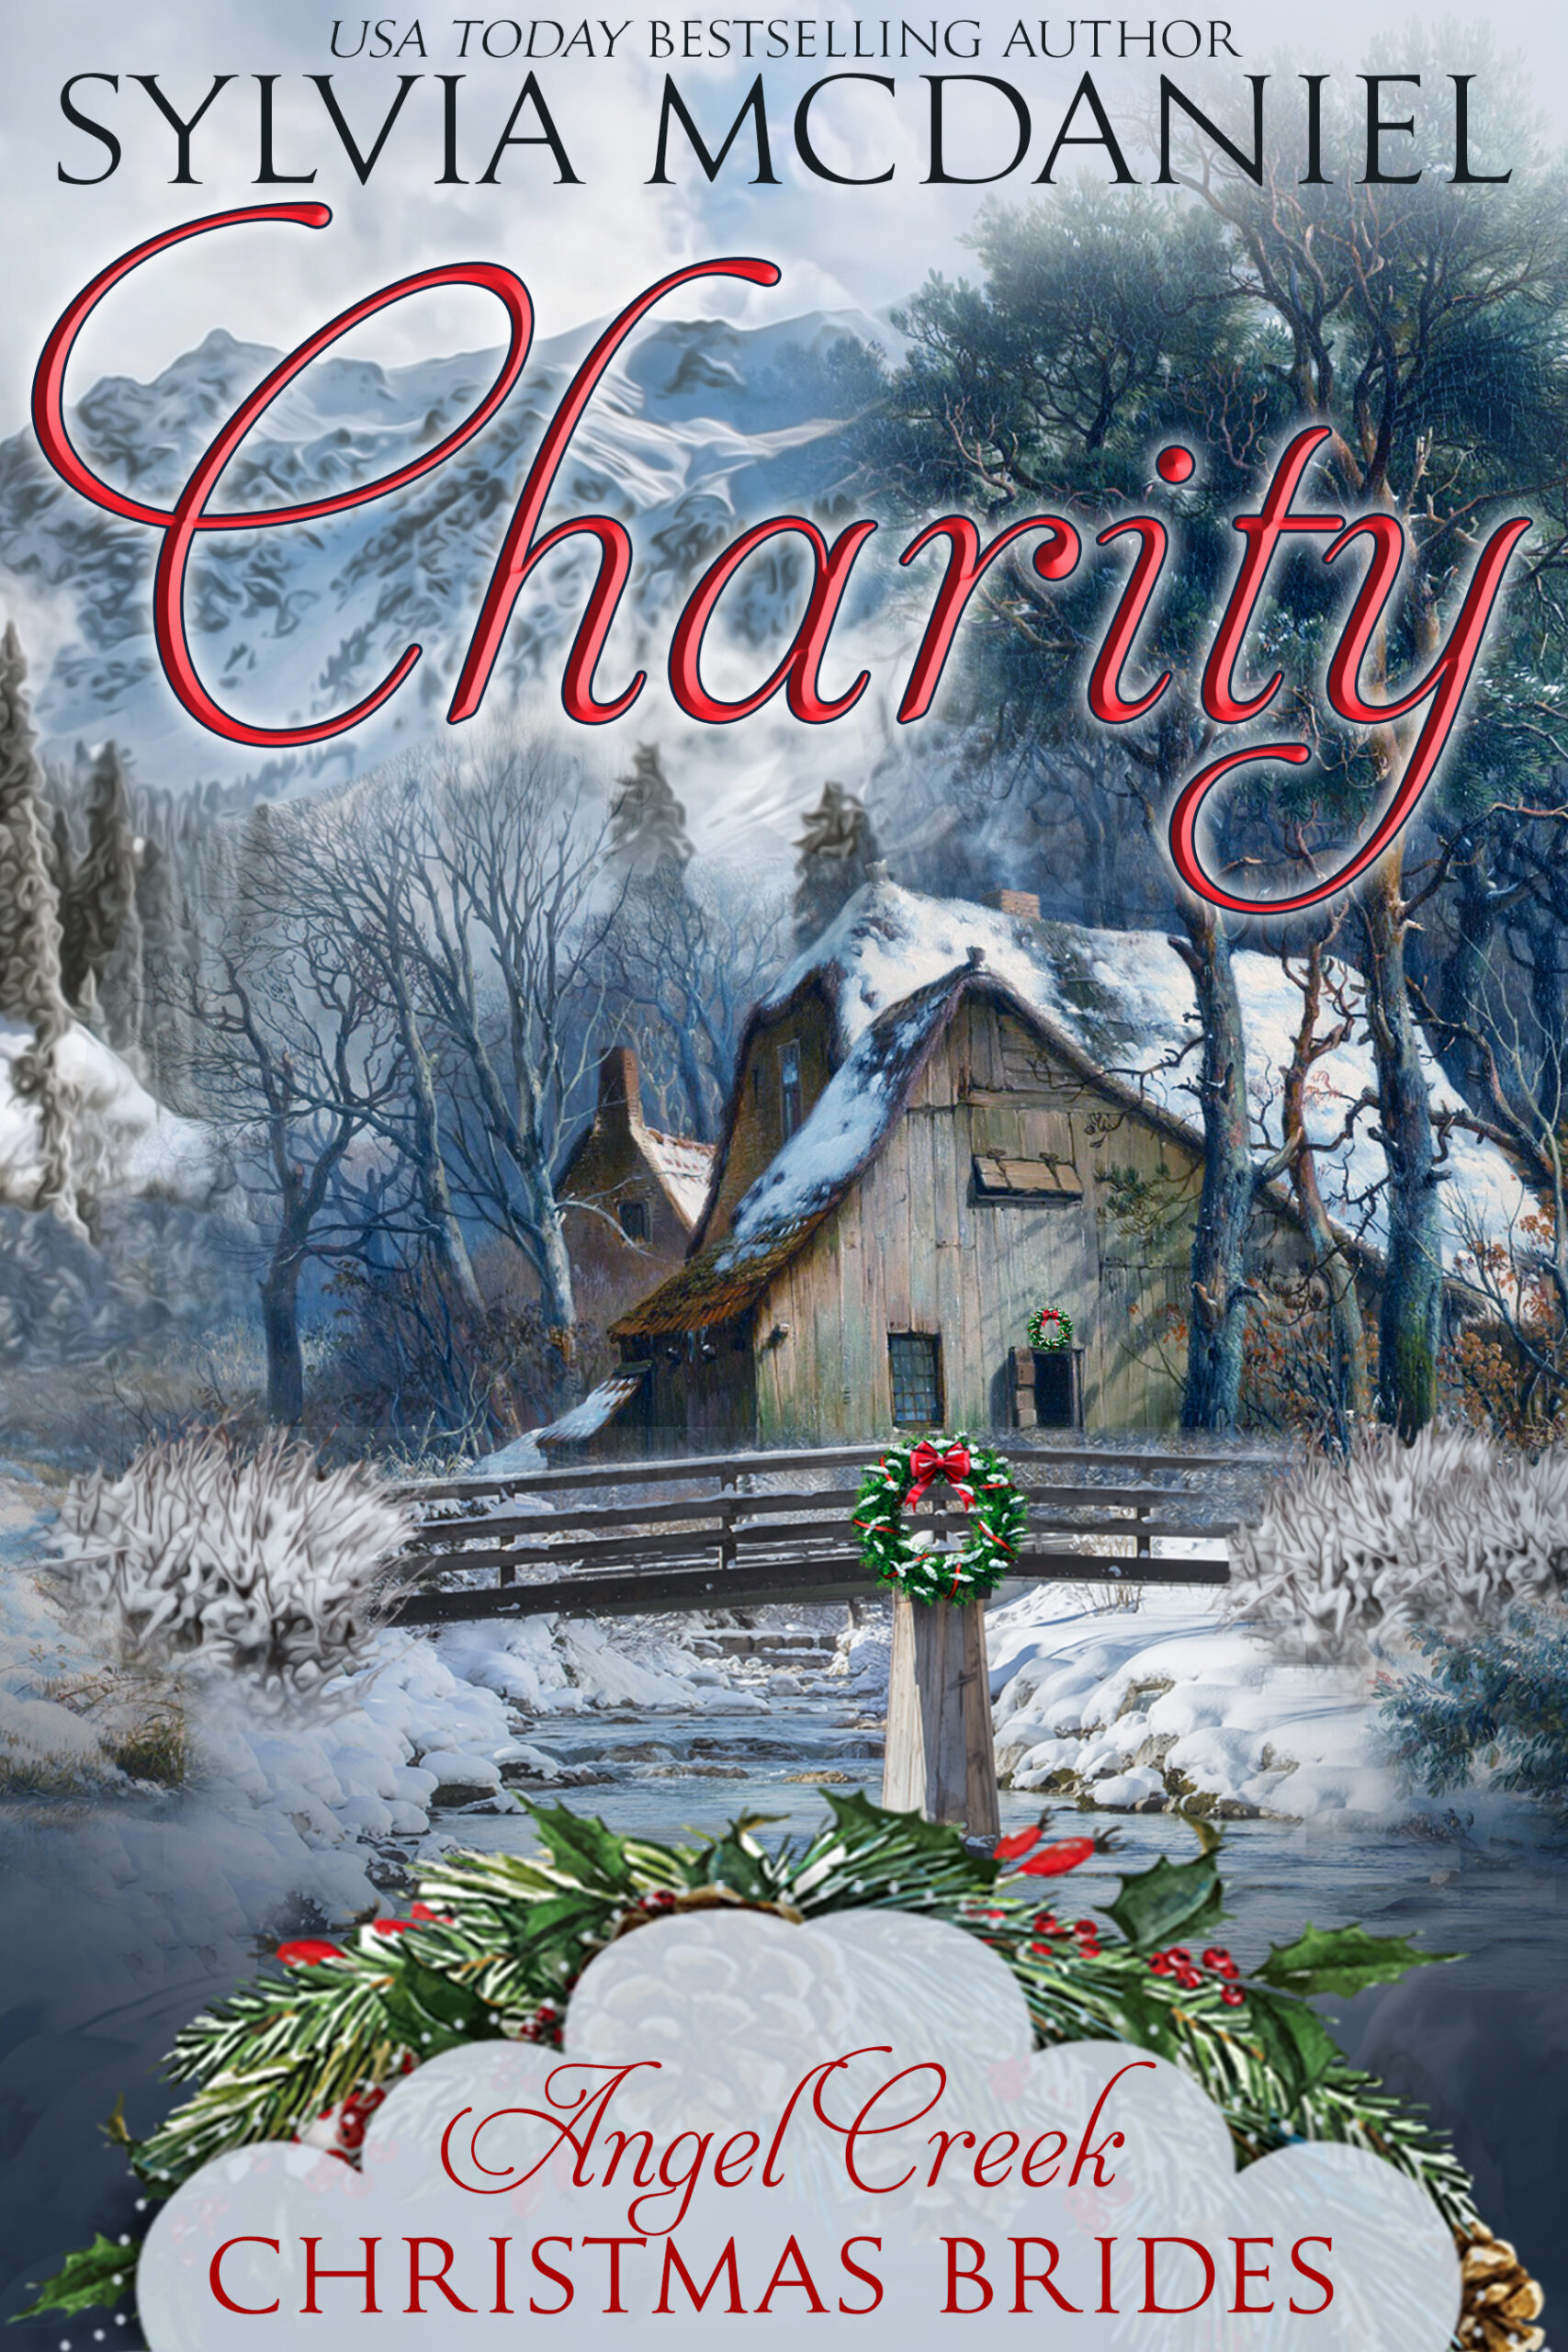 Cover of Charity by Sylvia McDaniel. A church with a bridge over a brook.